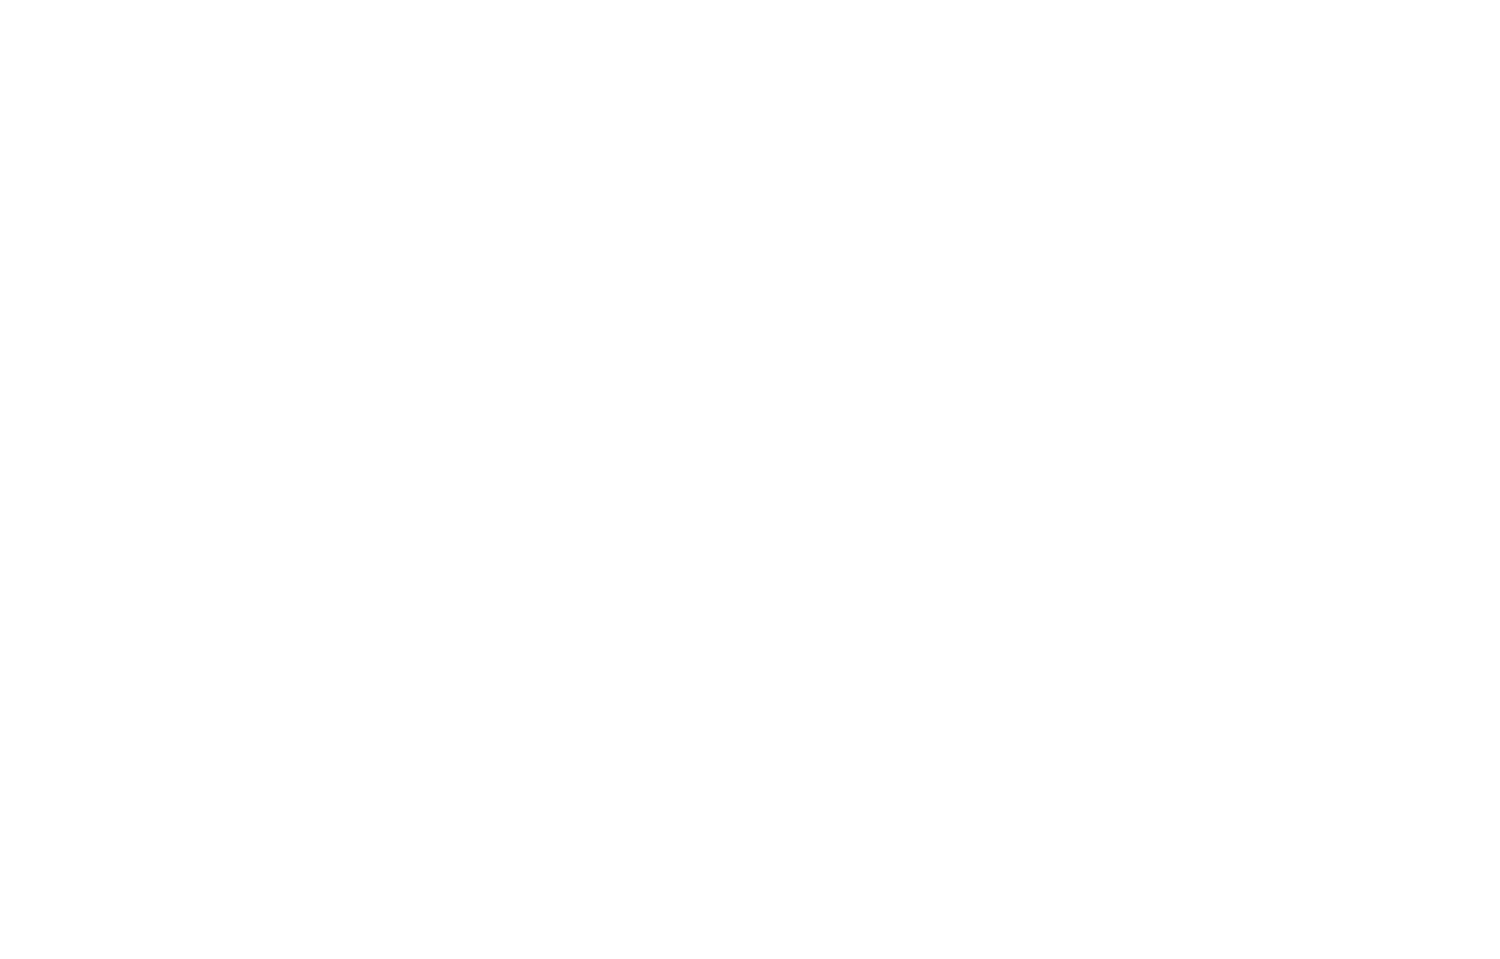 KOTA Productions